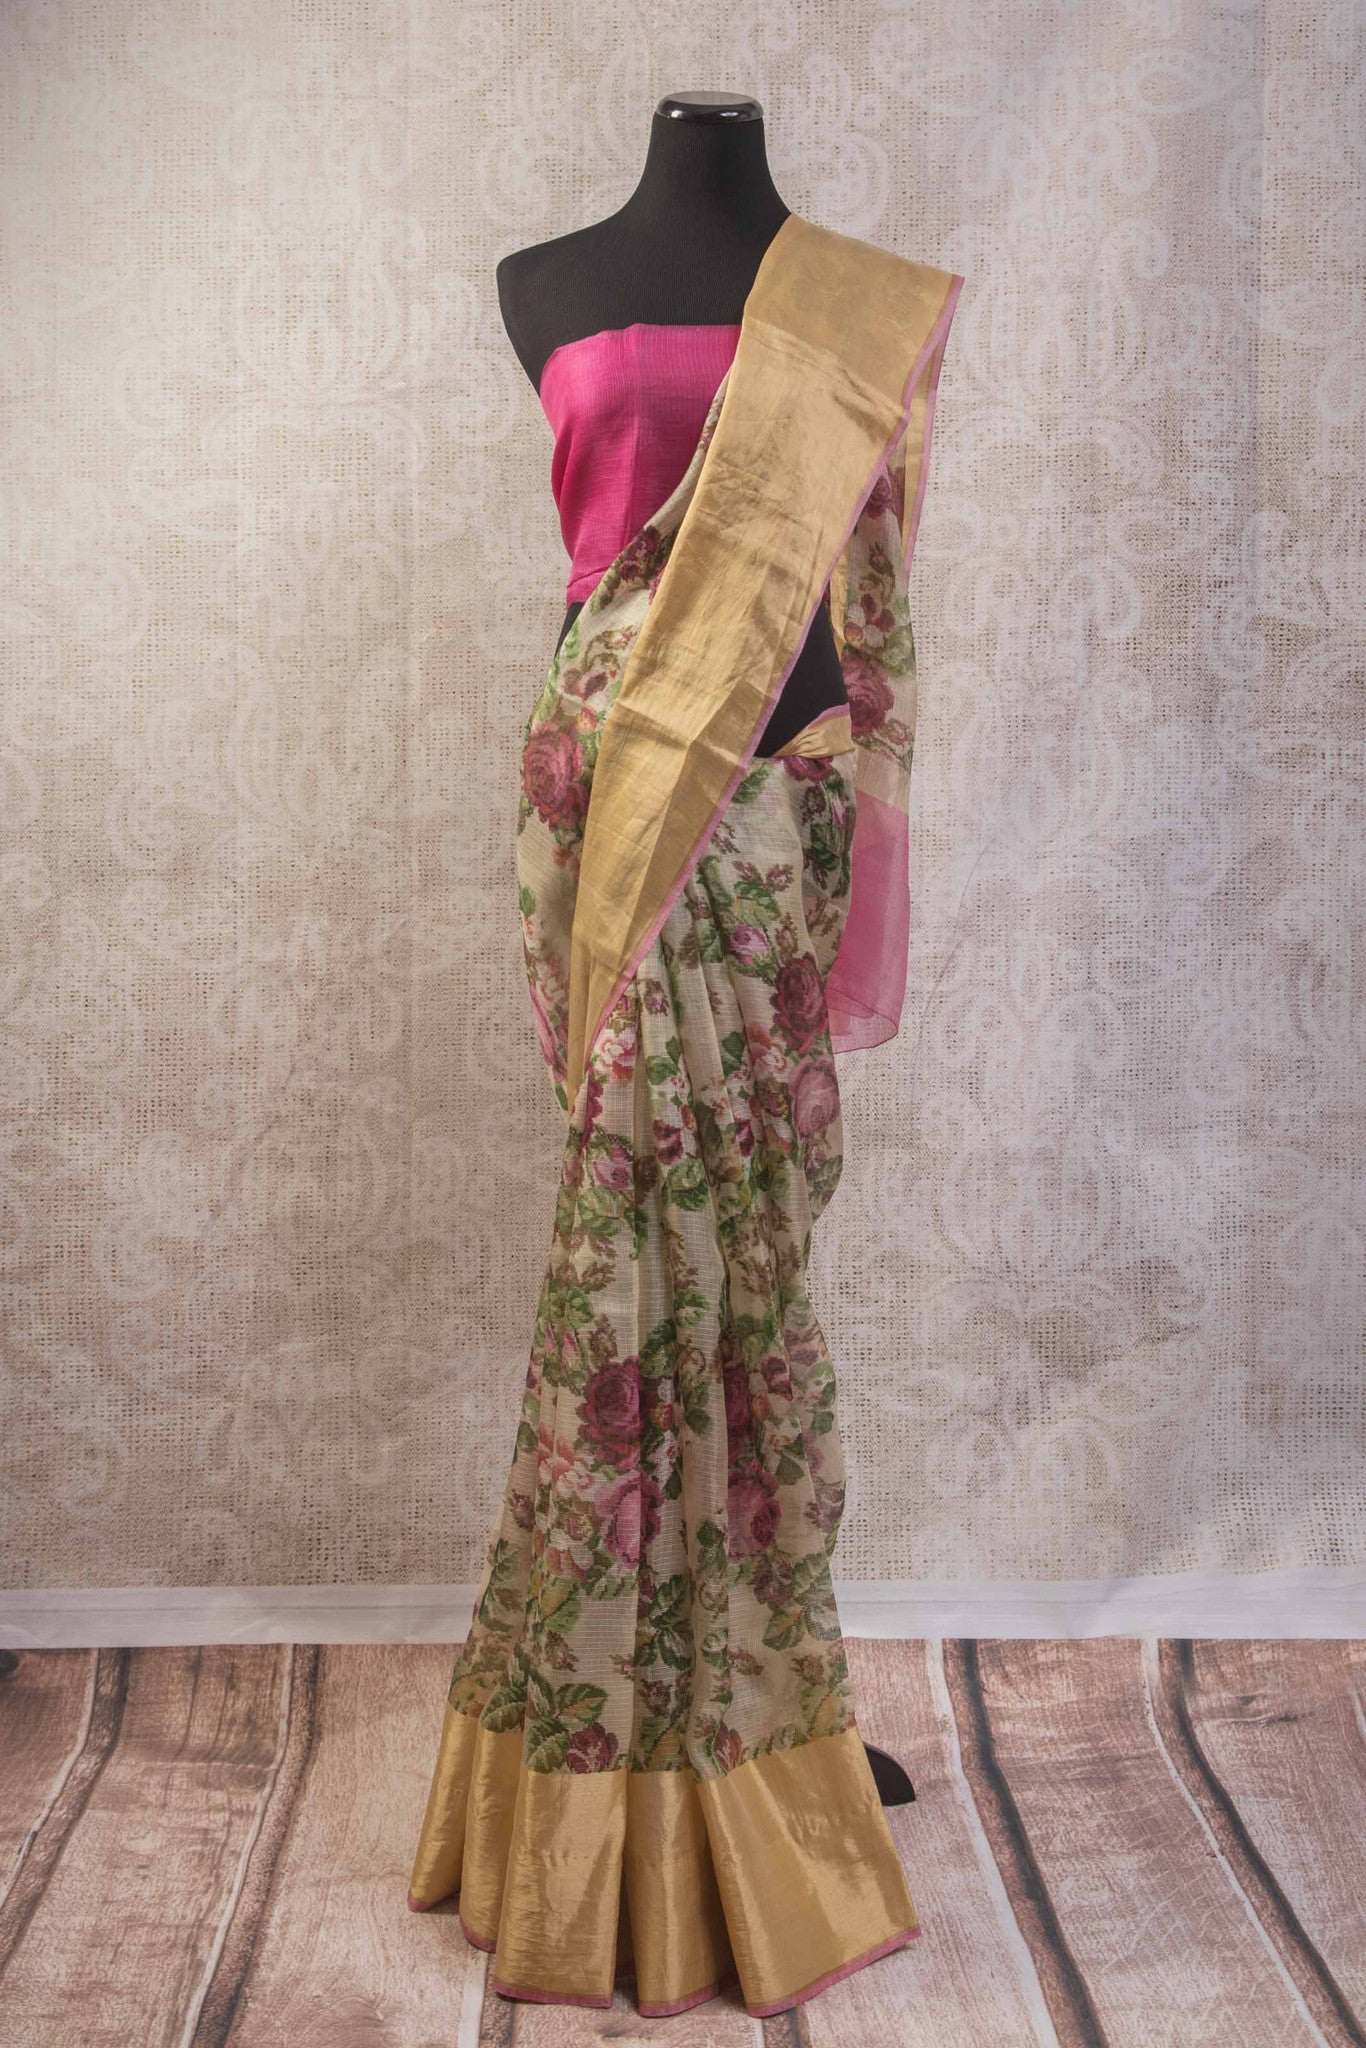 90b745 Lovely floral print light zari kota saree online in USA at our store Pure Elegance with gold trim border with an un-stiched pink blouse piece. A great pick for any occasion.